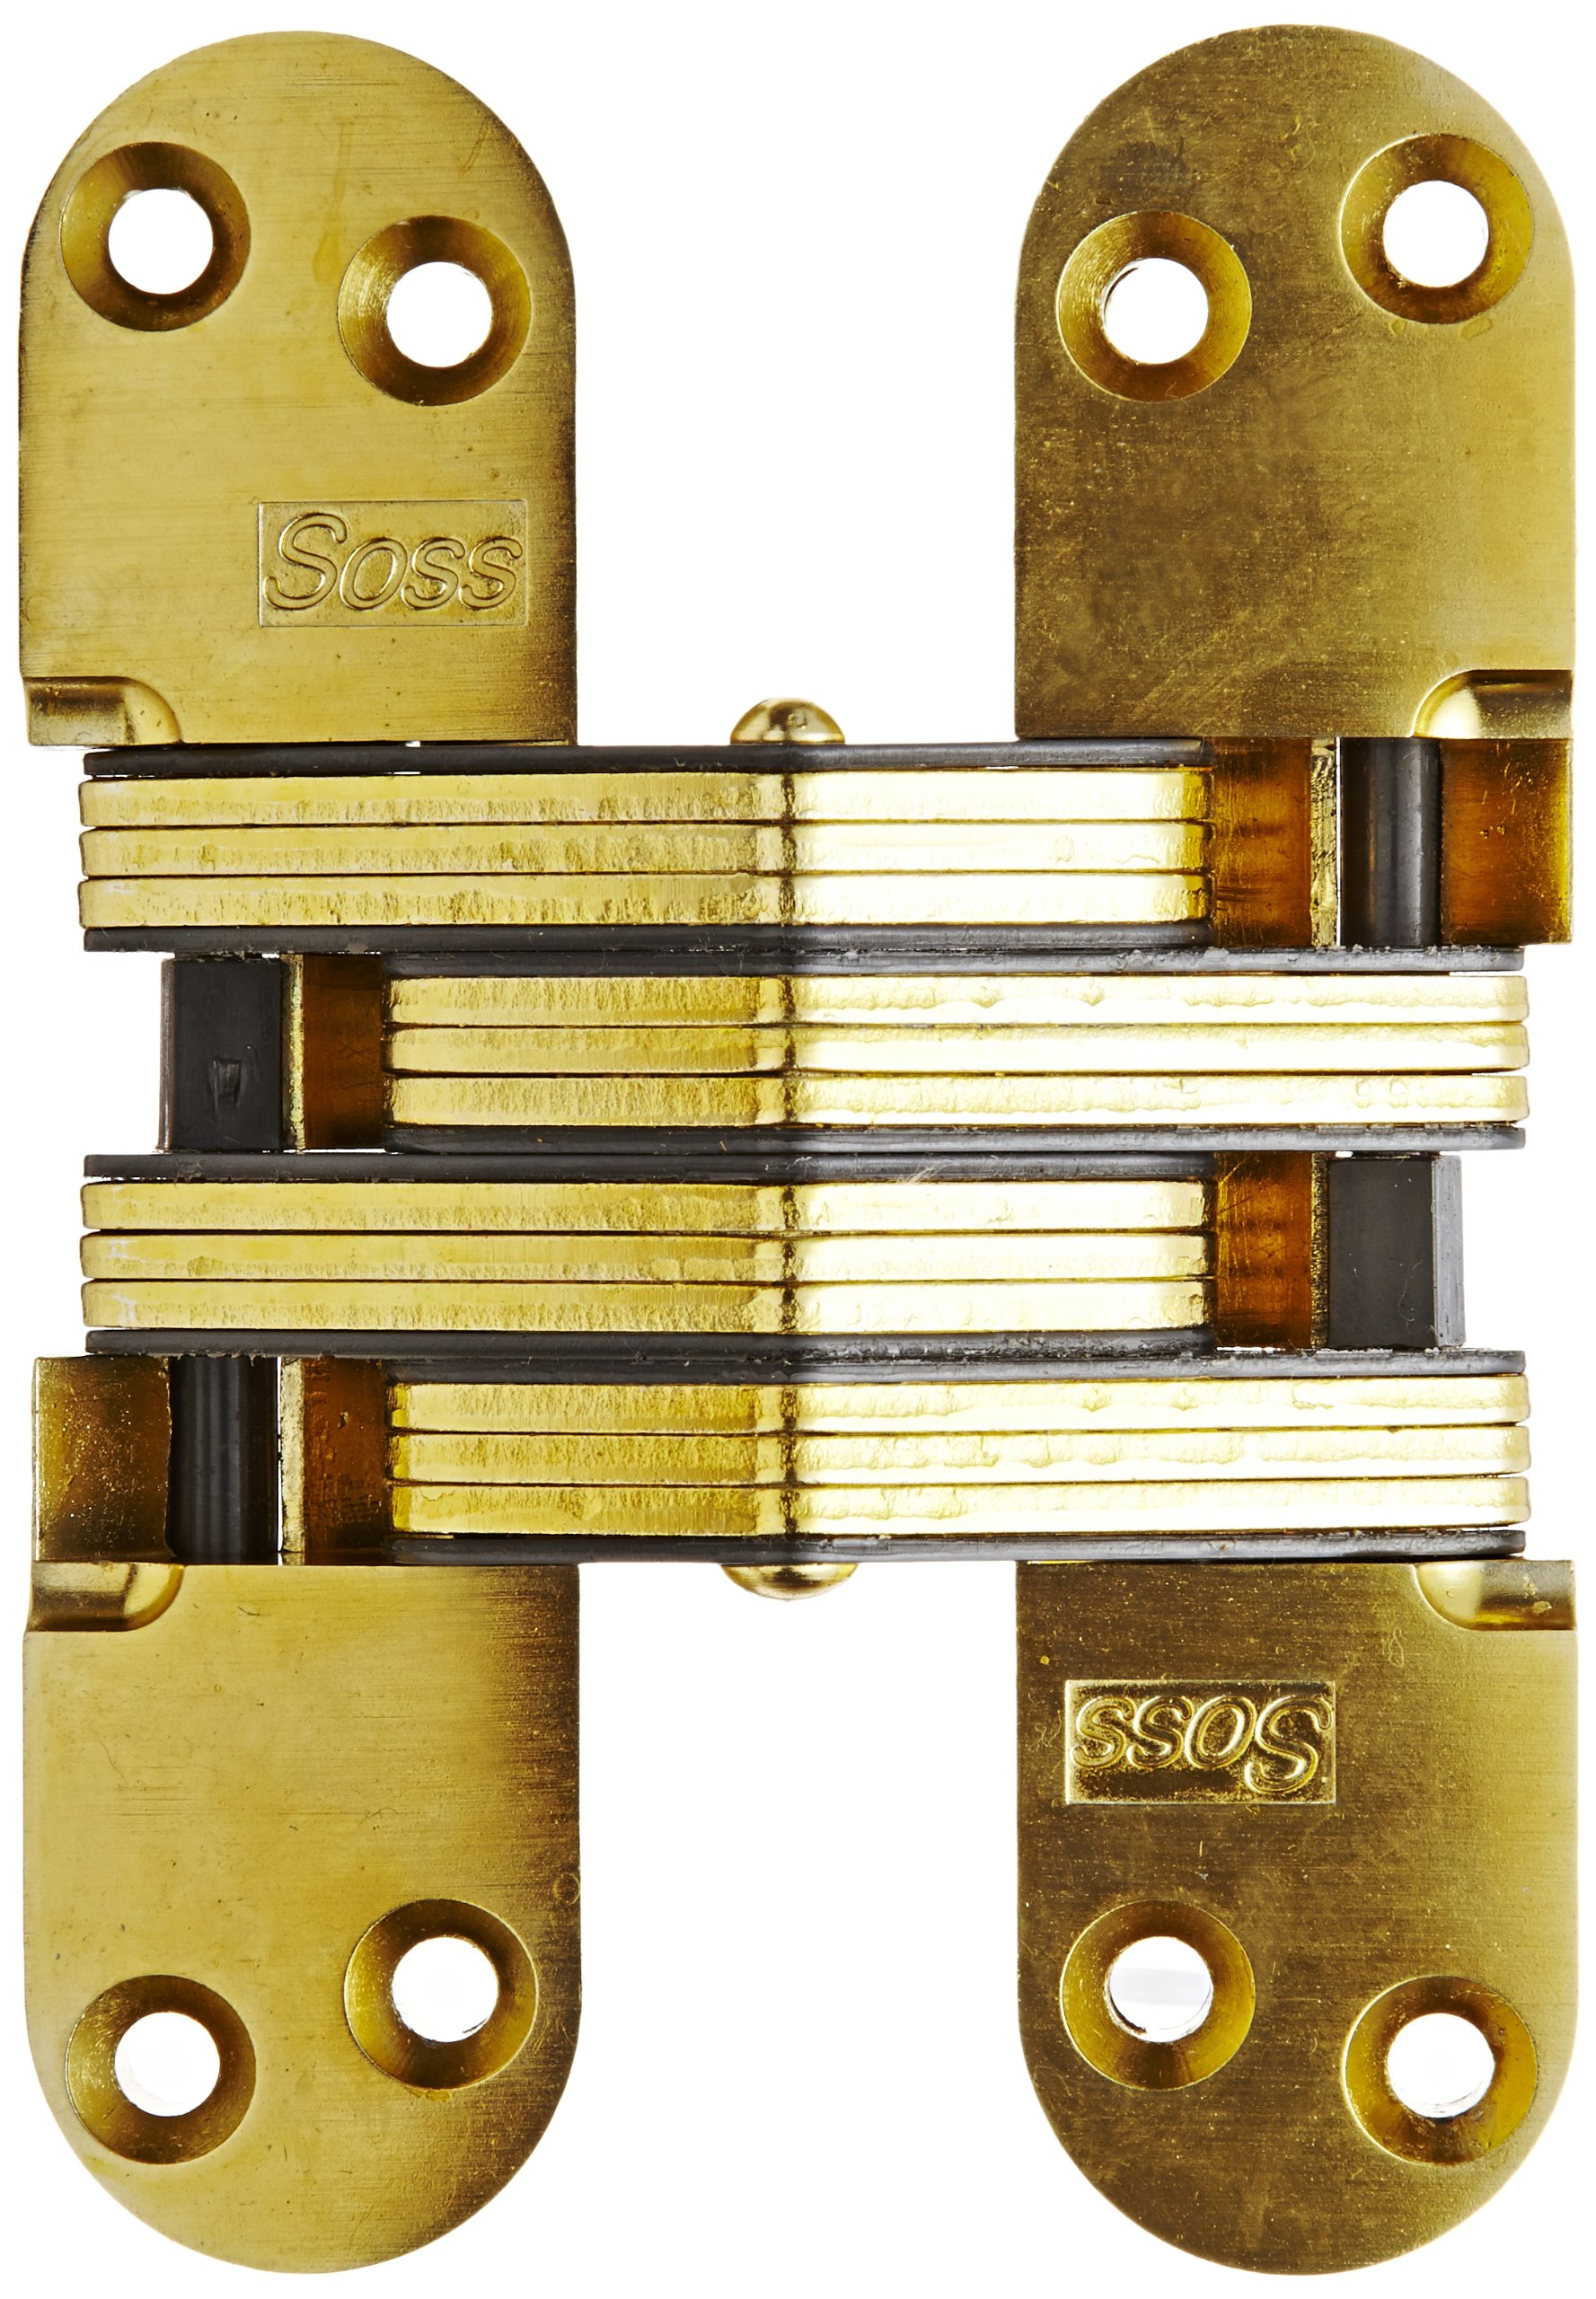 SOSS Mortise Mount Invisible Hinge with 8 Holes, Zinc, Satin Brass Finish, 5-1/2'' Leaf Height, 1-3/8'' Leaf Width, 1-15/16'' Leaf Thickness, 12 x 1-1/2'' Screw Size